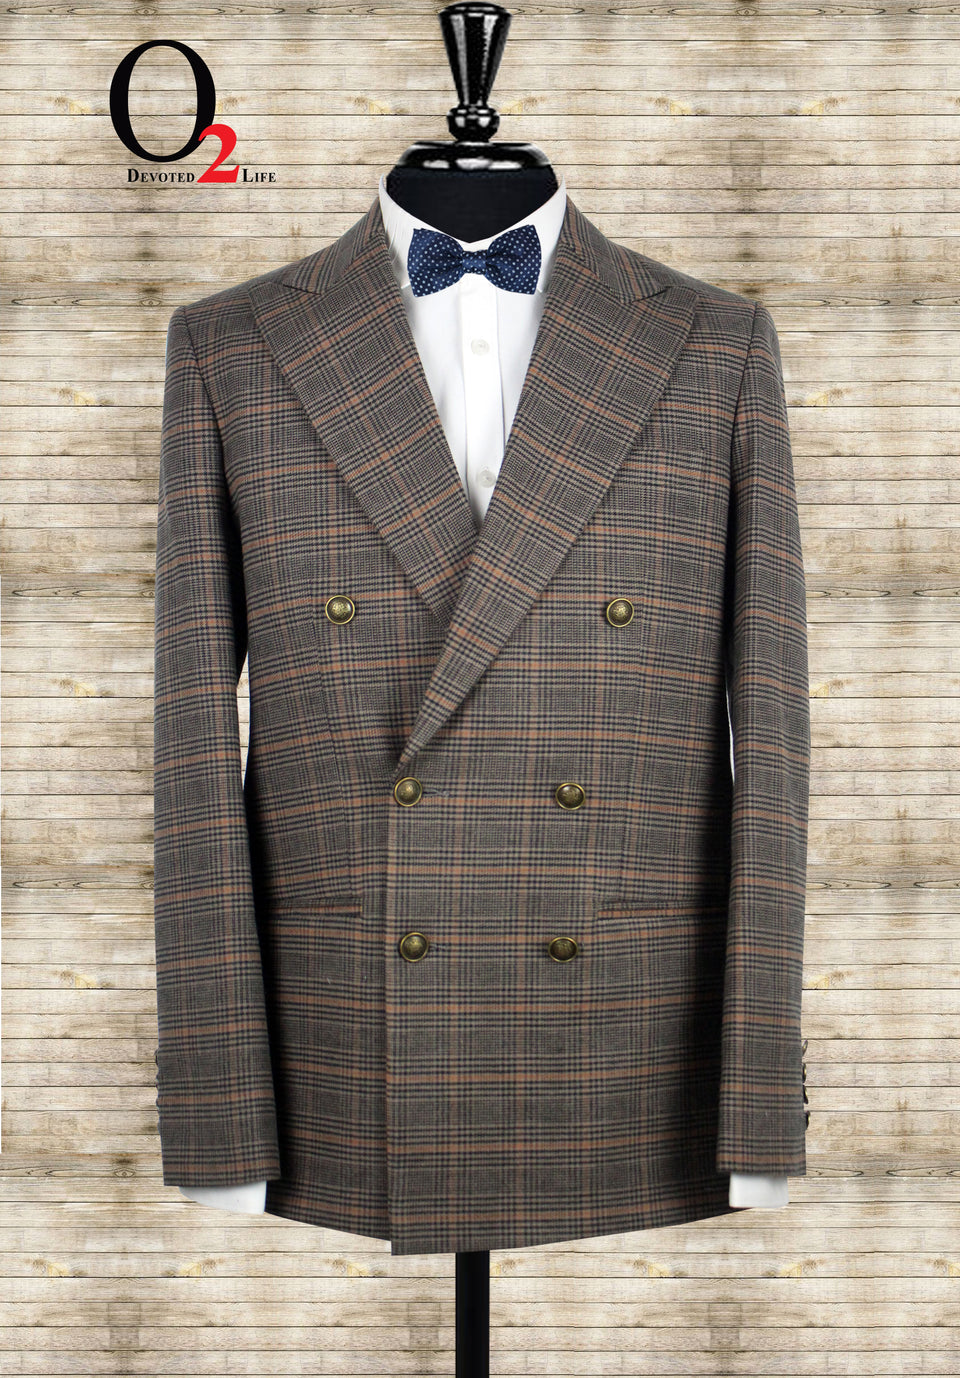 Men's Vintage 2 Piece Checkered Suit